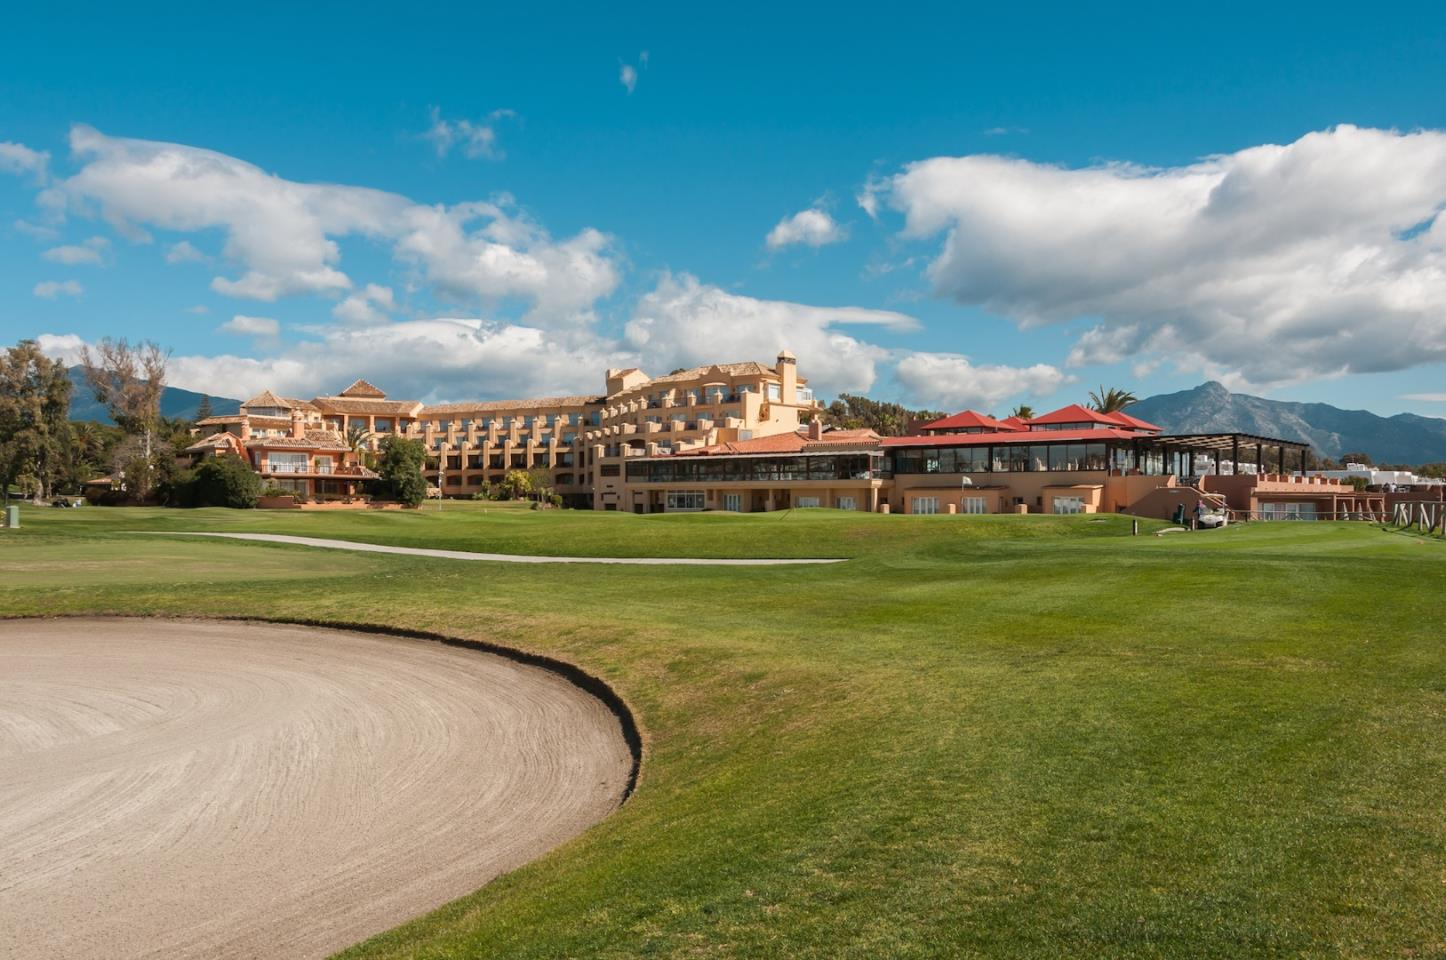 Hotel Guadalmina Spa & Golf Resort - 3 Nights & 2 Rounds